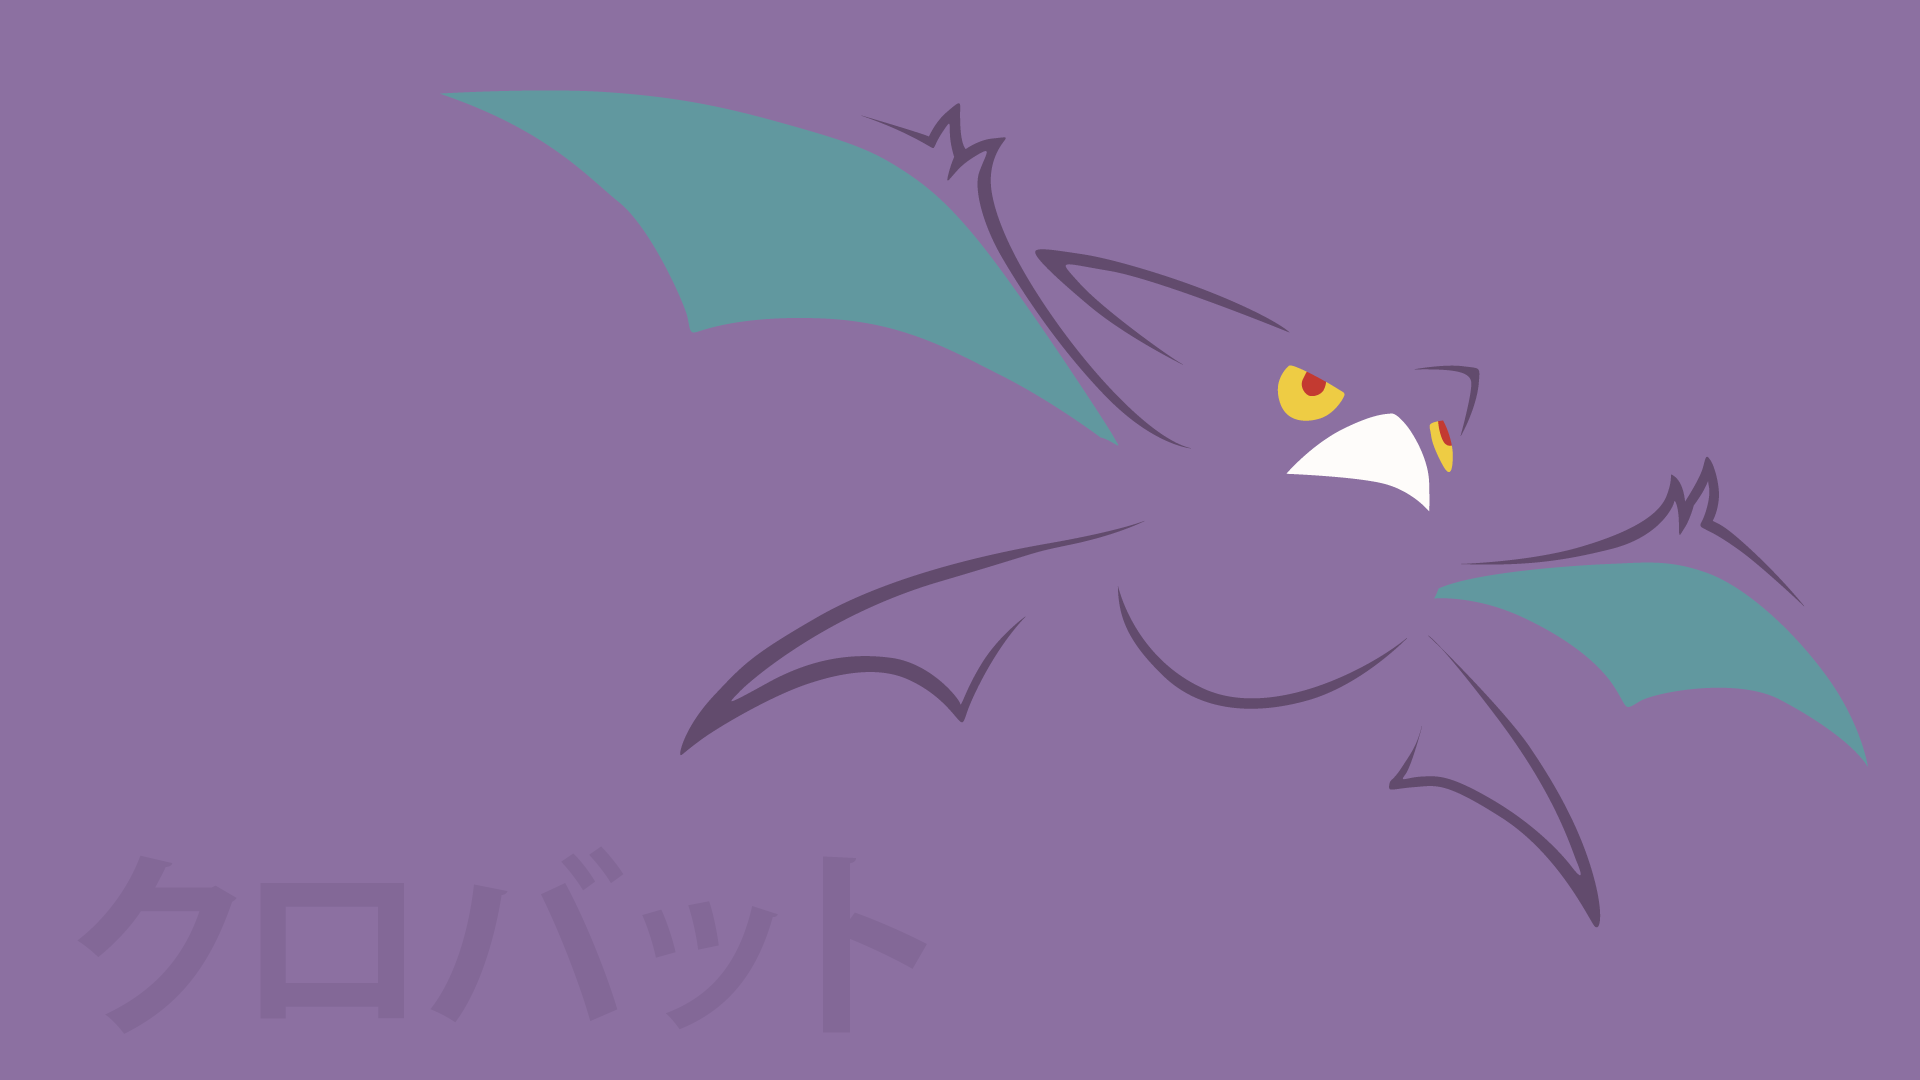 Crobat by DannyMyBrother on DeviantArt